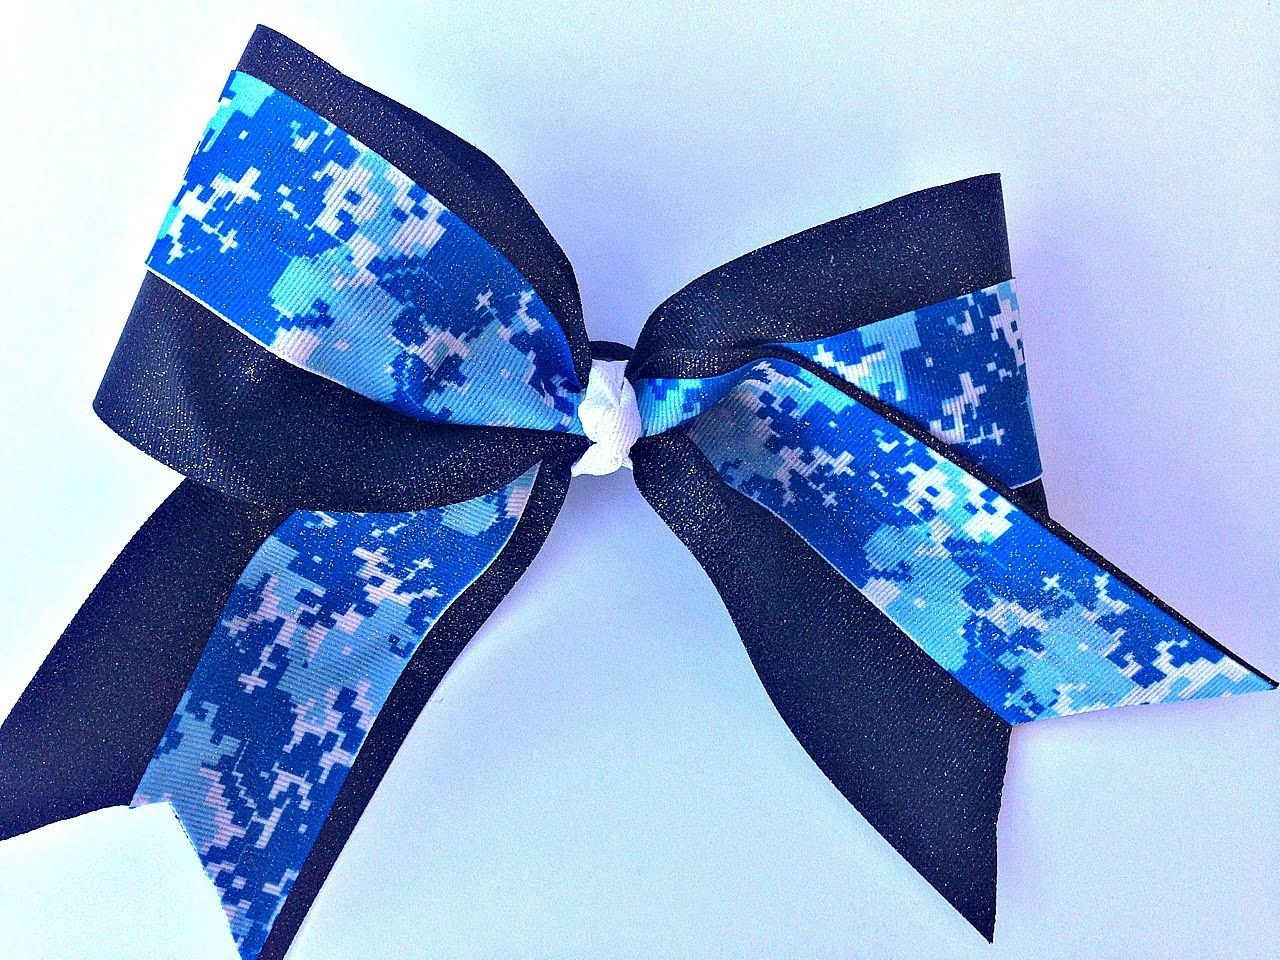 In This Video I Show You How To Make A Big Glitter Cheer Bow Without Sewing Products Used Ribbon Fabri Tac Glue Tulip Spray Paint